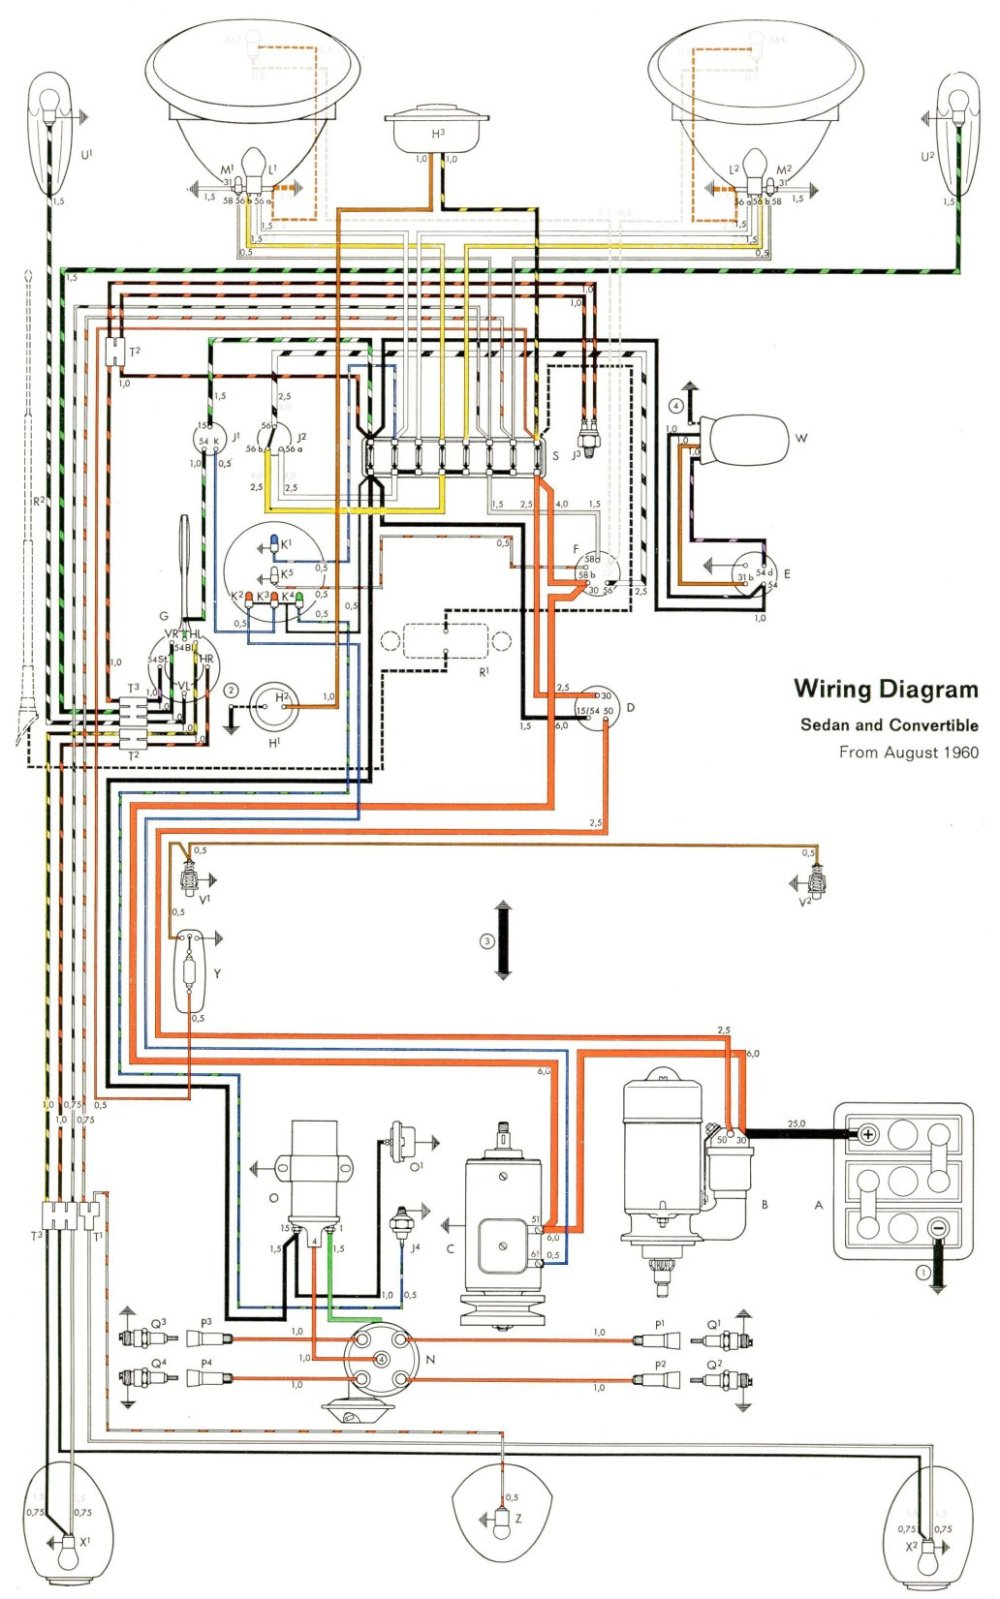 medium resolution of thesamba com type 1 wiring diagrams volkswagen new beetle wiring schematics